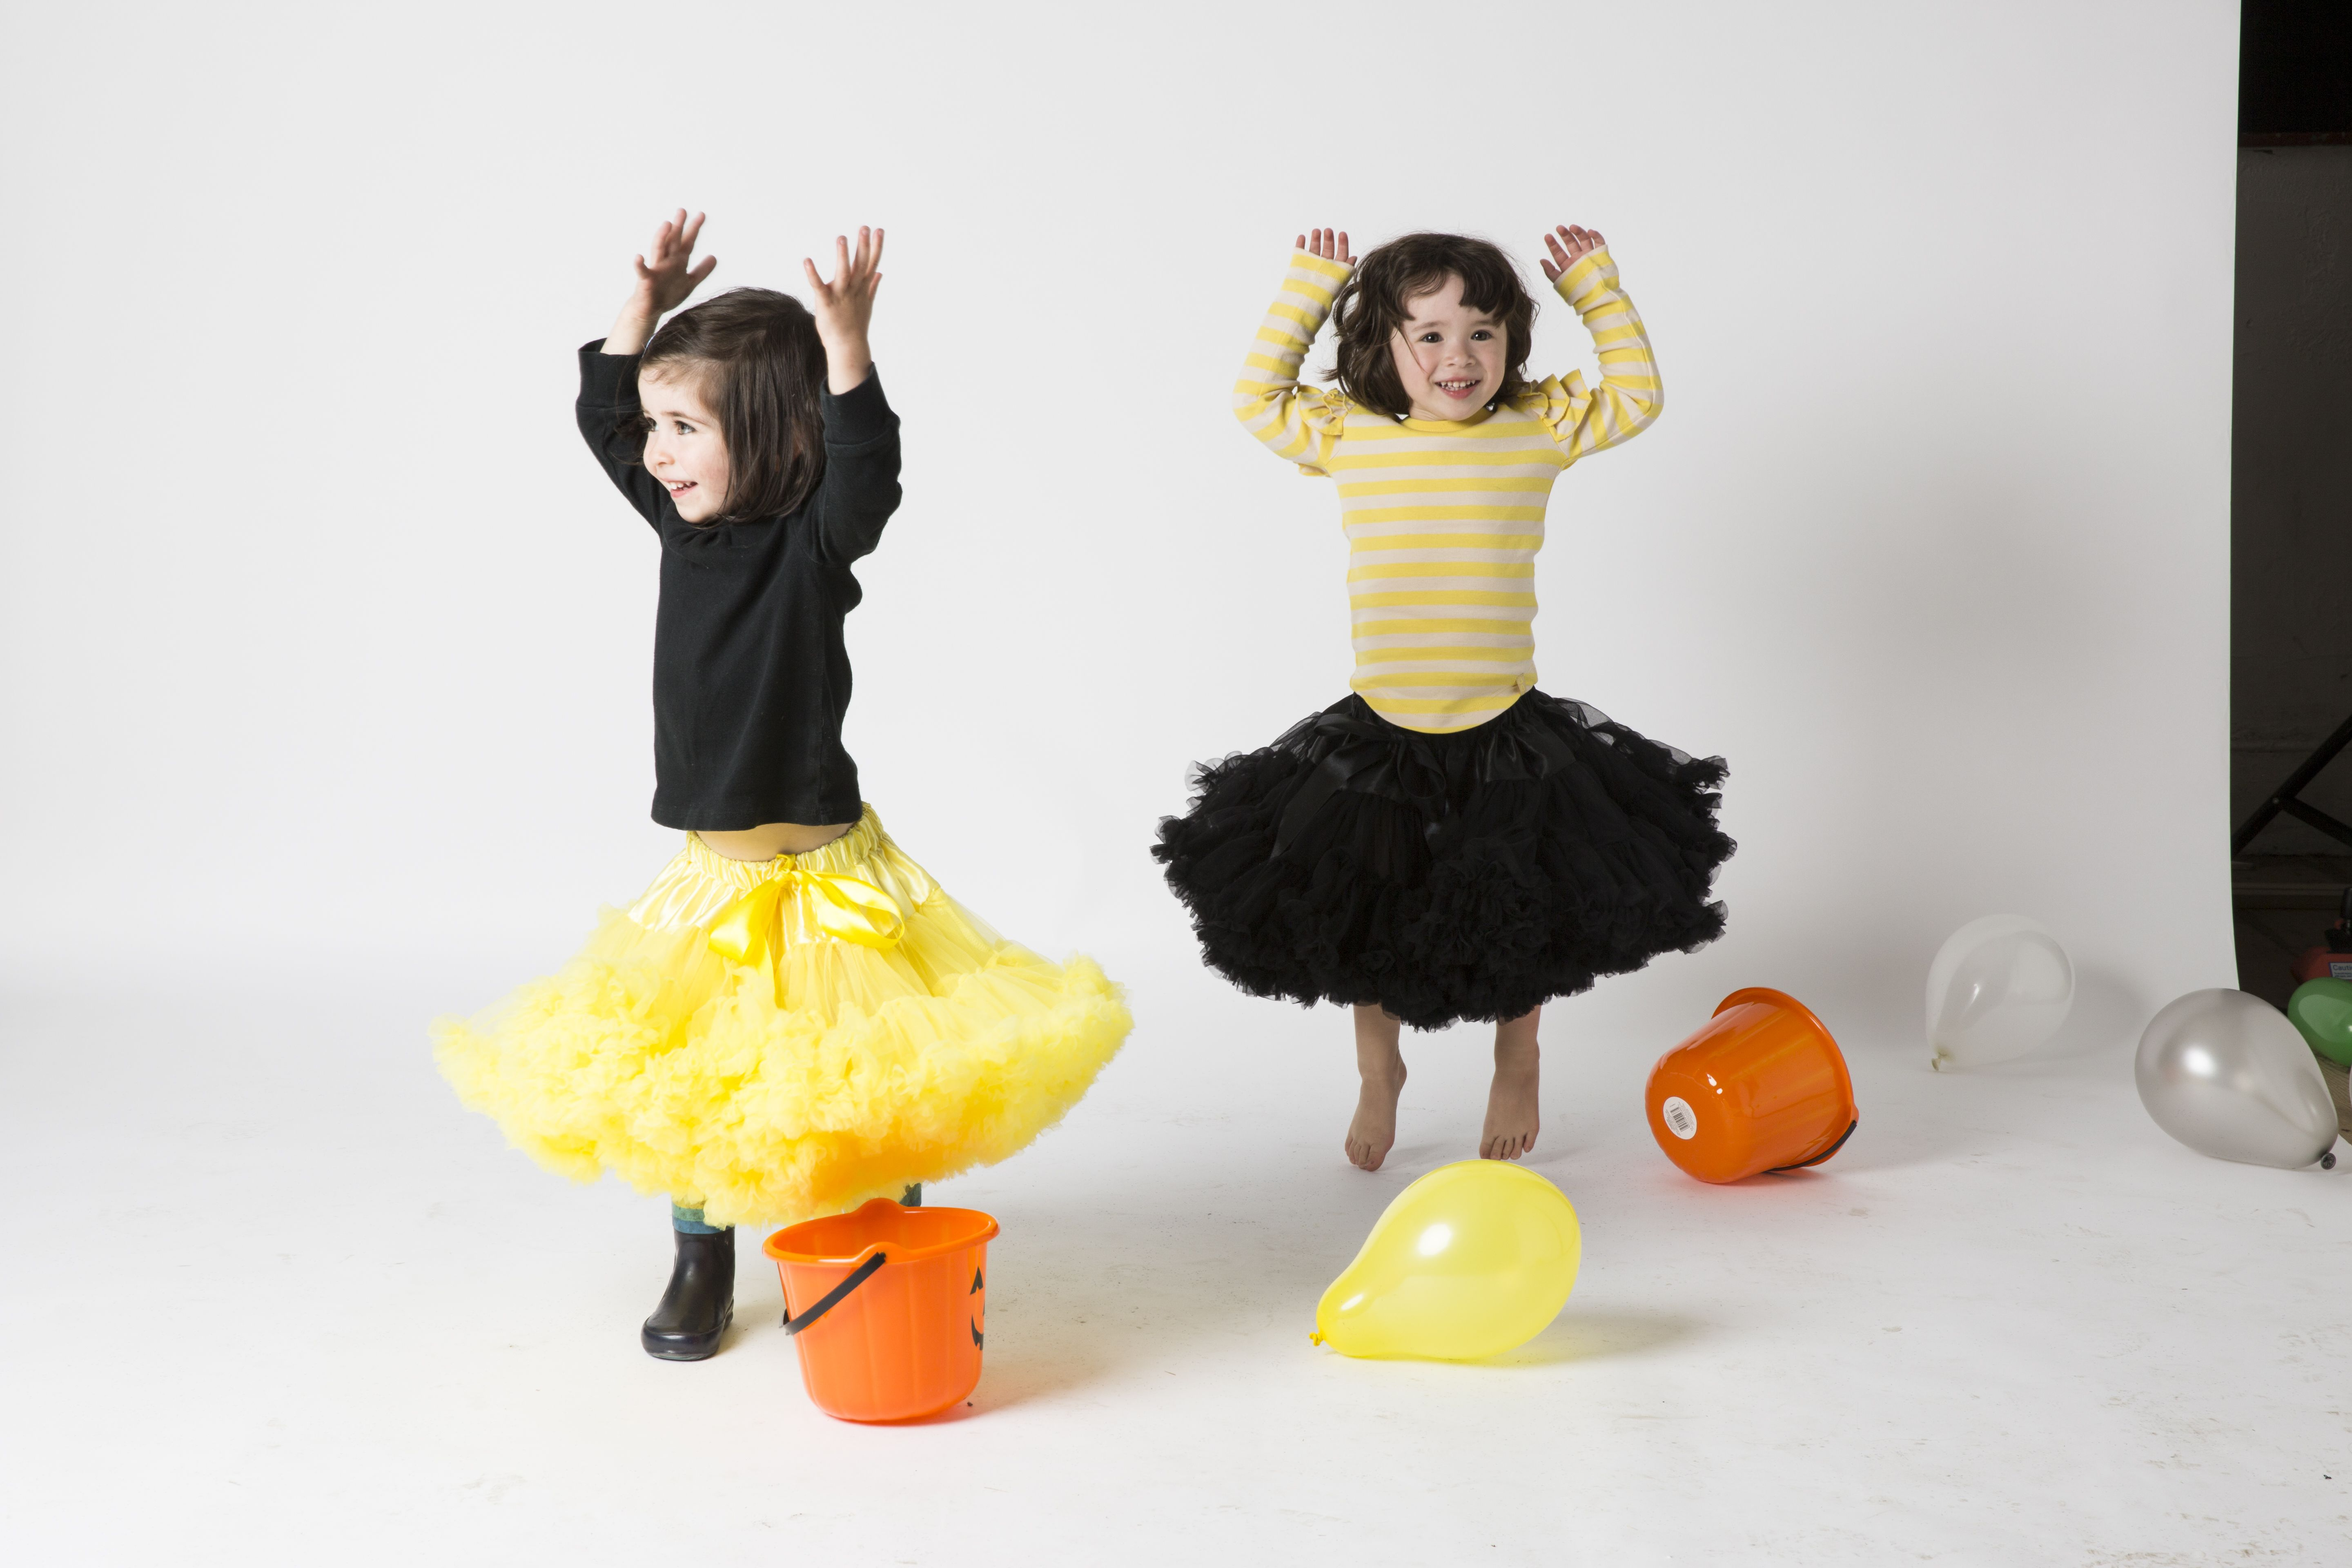 Cool Halloween tutus available at www.our-kid.co.uk